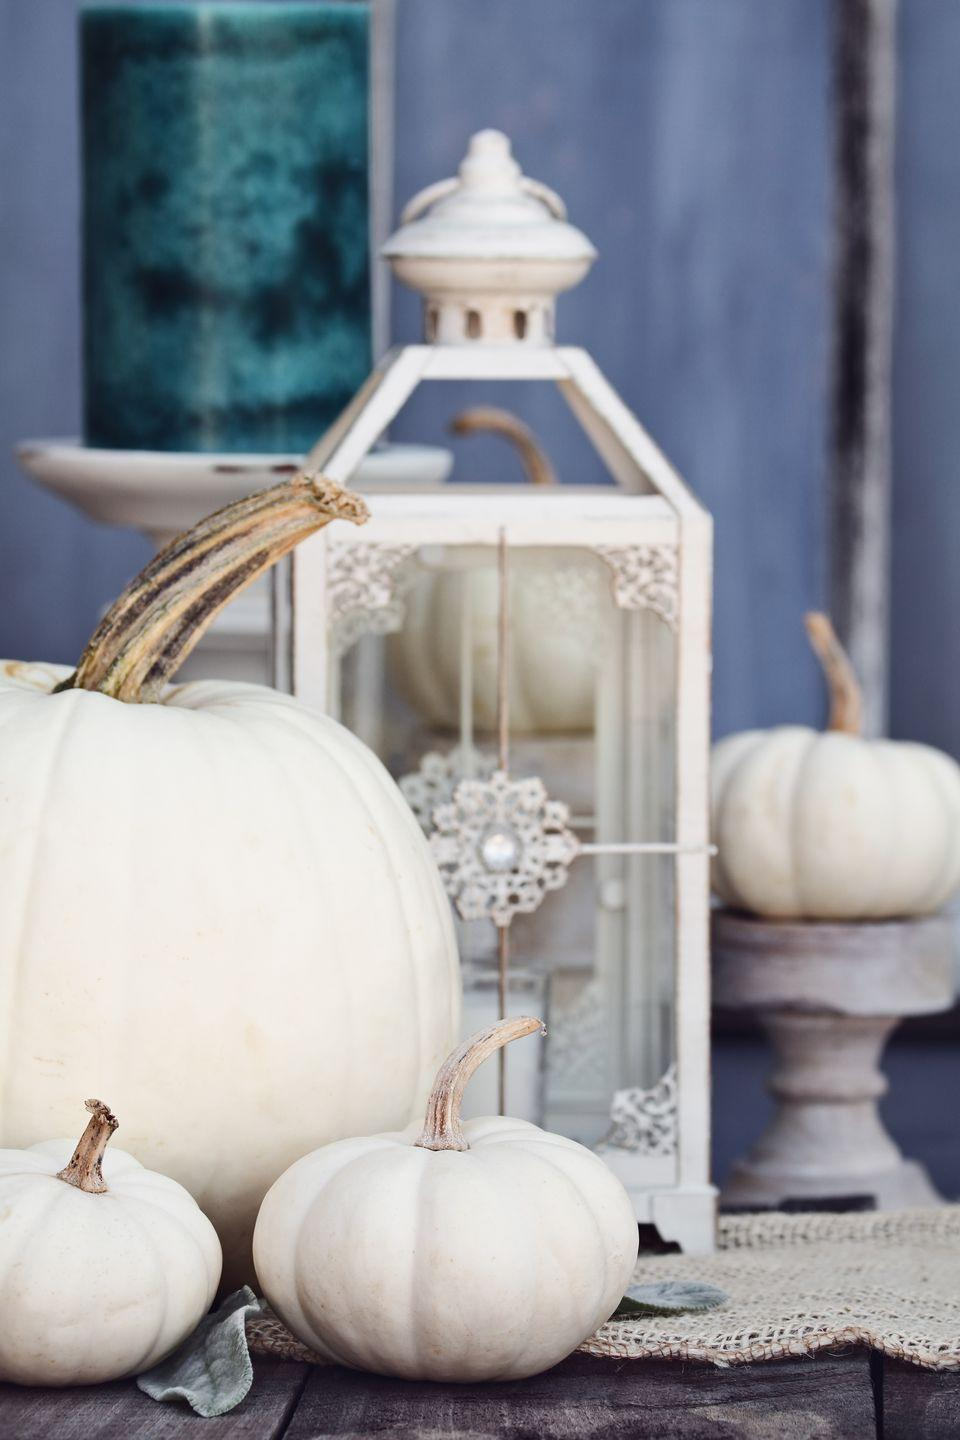 """<p>Get in the spirit—literally!—with a Halloween party theme inspired by one of the most tried-and-true costumes: a ghost! To create the slightly frightening feel, apply the all-white theme to decorations (think <a href=""""https://www.oprahmag.com/life/g28190402/diy-halloween-decorations/?slide=34"""" rel=""""nofollow noopener"""" target=""""_blank"""" data-ylk=""""slk:painted pumpkins"""" class=""""link rapid-noclick-resp"""">painted pumpkins</a>, <a href=""""https://www.oprahmag.com/life/g28190402/diy-halloween-decorations/?slide=38"""" rel=""""nofollow noopener"""" target=""""_blank"""" data-ylk=""""slk:spooky eyeball wreaths"""" class=""""link rapid-noclick-resp"""">spooky eyeball wreaths</a>, and <a href=""""https://www.oprahmag.com/life/g28190402/diy-halloween-decorations/?slide=27"""" rel=""""nofollow noopener"""" target=""""_blank"""" data-ylk=""""slk:ghost garlands"""" class=""""link rapid-noclick-resp"""">ghost garlands</a>), treats (such as mummy pops, s'mores dip, white chocolate covered apples), and costumes (Princess Leia, ballerinas, and, yes, Casper).</p>"""